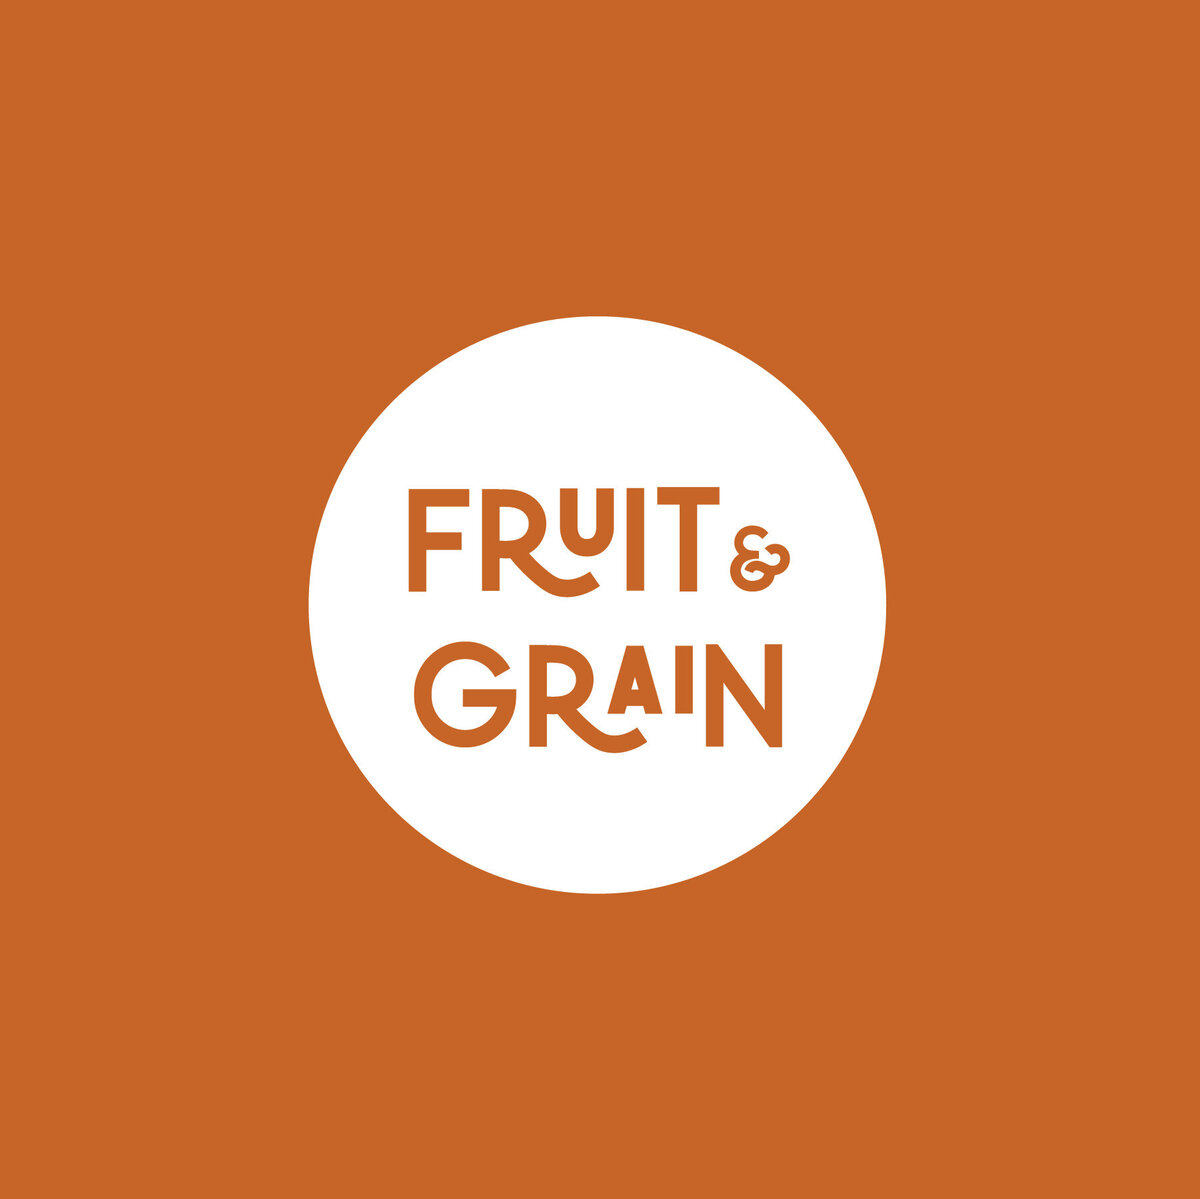 FRUIT & GRAIN [Recovered]-22